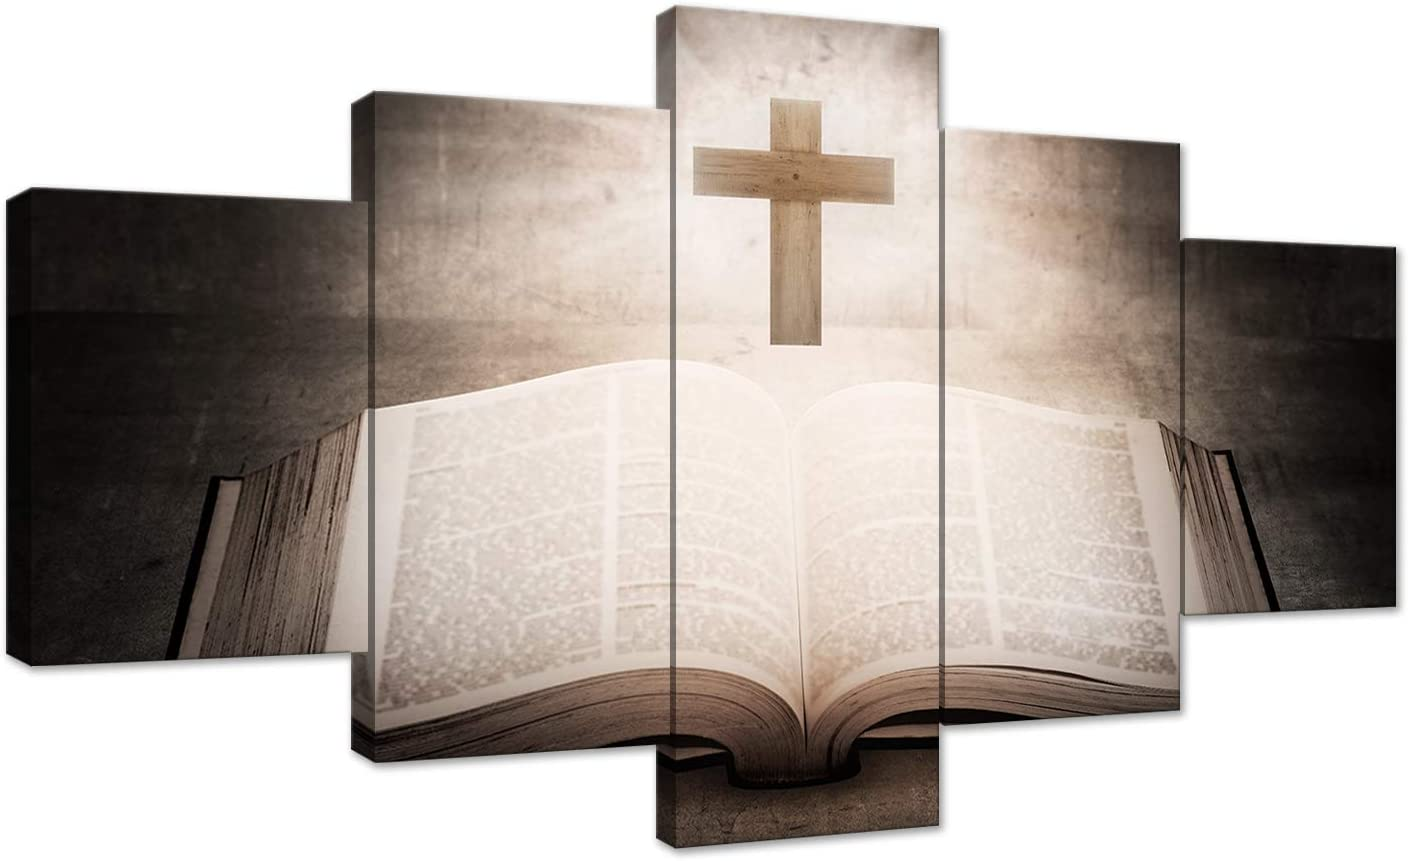 AMEMNY 5 Panels Christian Jesus Cross Painting Print Poster Wall Art Sunshine Bible Book Background Paintings Home Decor Paintings Living Room Decorating Framed Ready to Hang